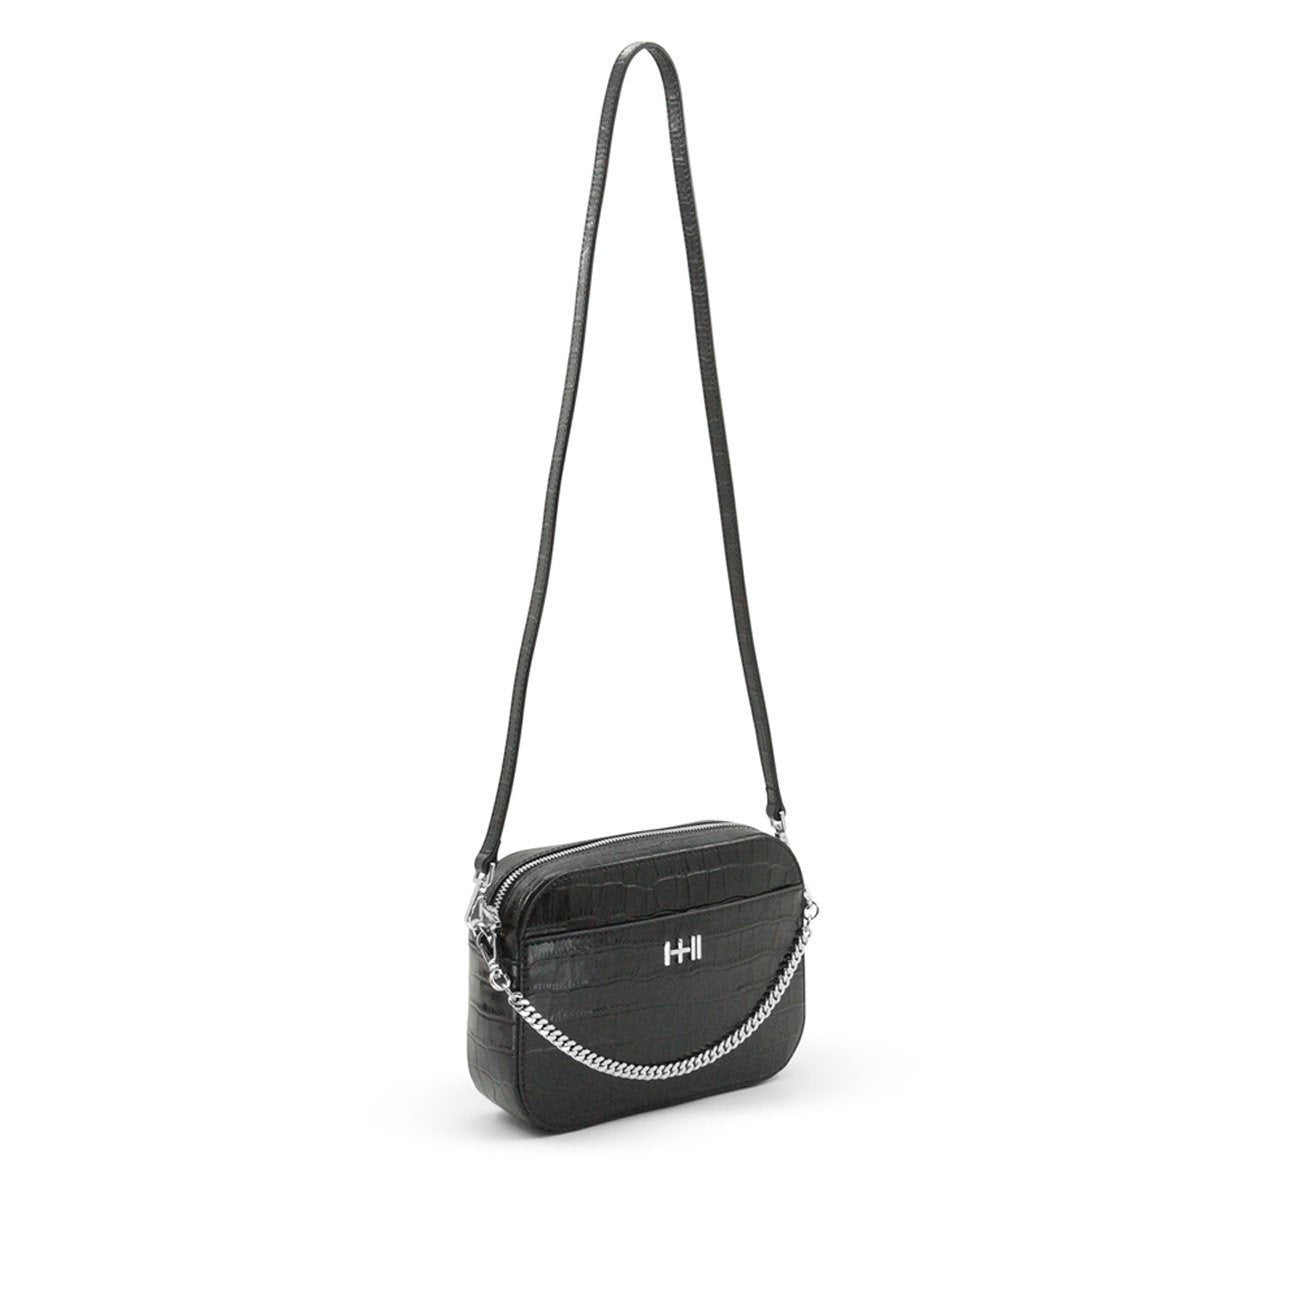 Dylan Kain The Mini Rodriguez Croc Bag - Silver